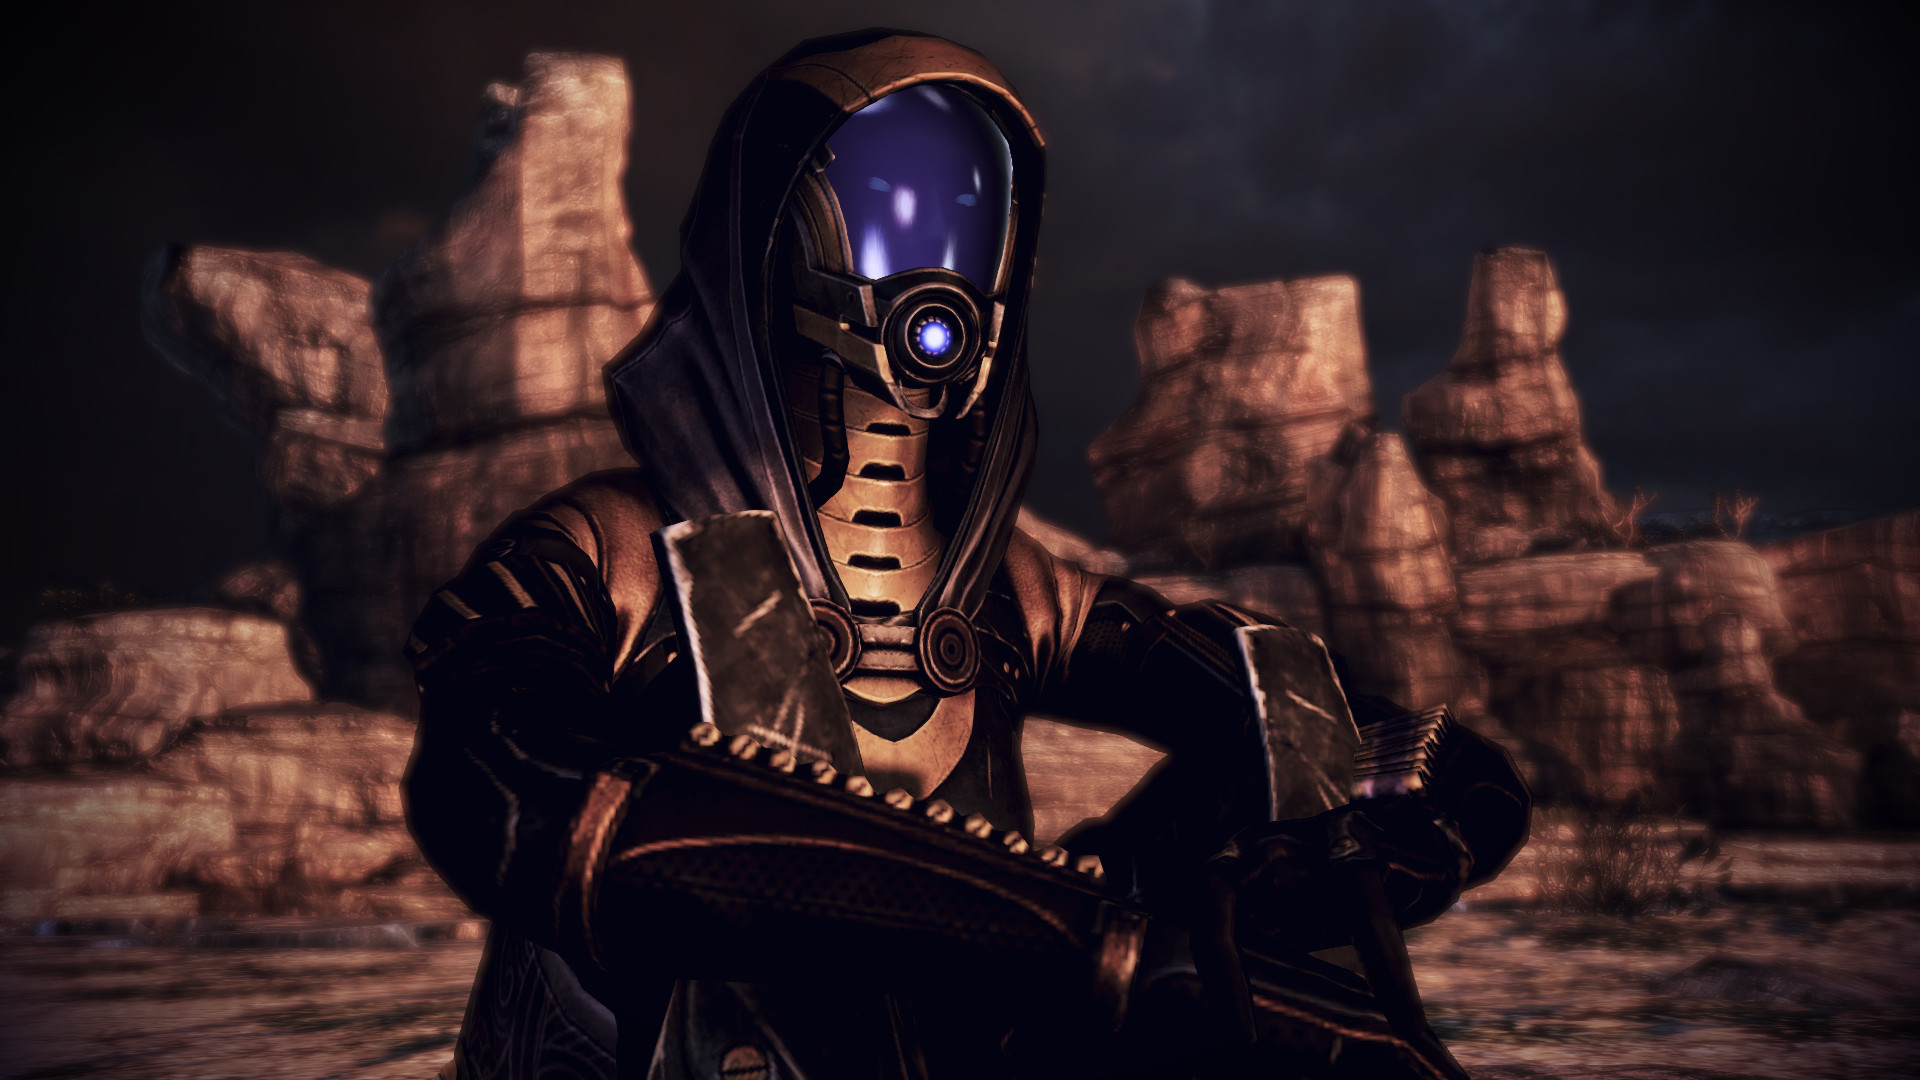 Tali'Zorah vas Normandy 13 by johntesh